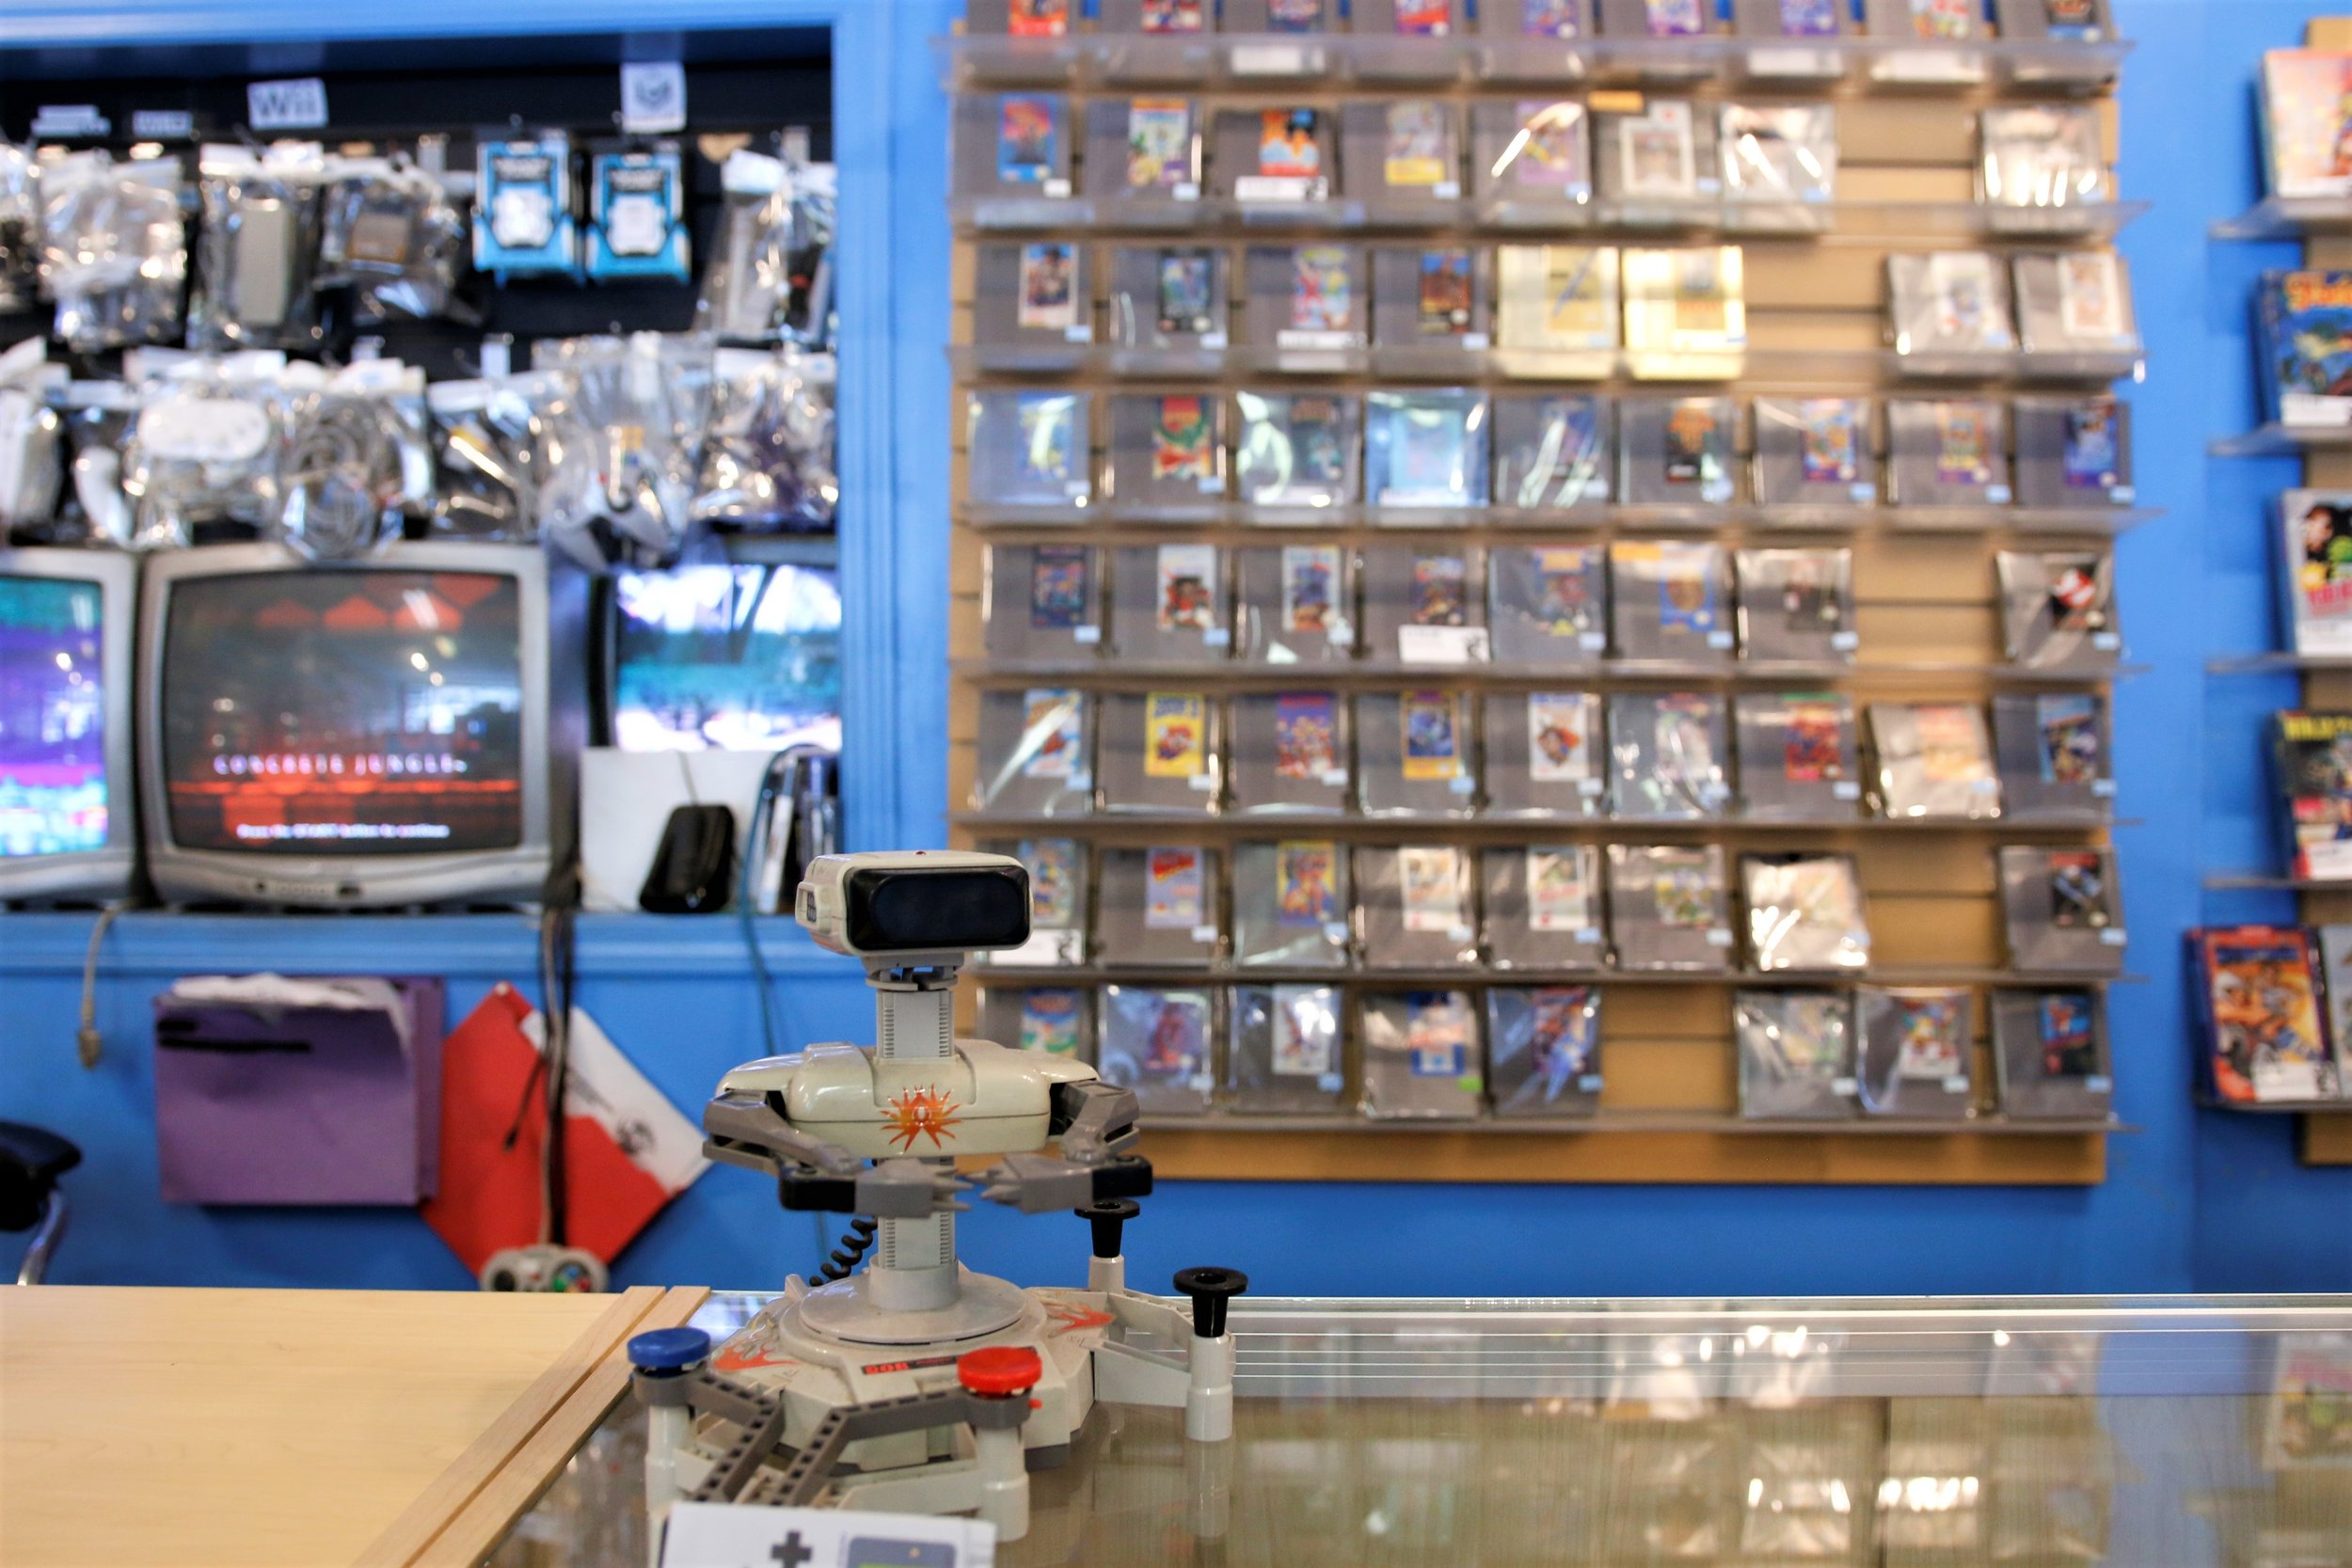 Meet R.O.B. He was launched by  NES in 1985 . Now he lives on the counter at Nexwave. Come say hi and play some Gyromite with him! He loves company.